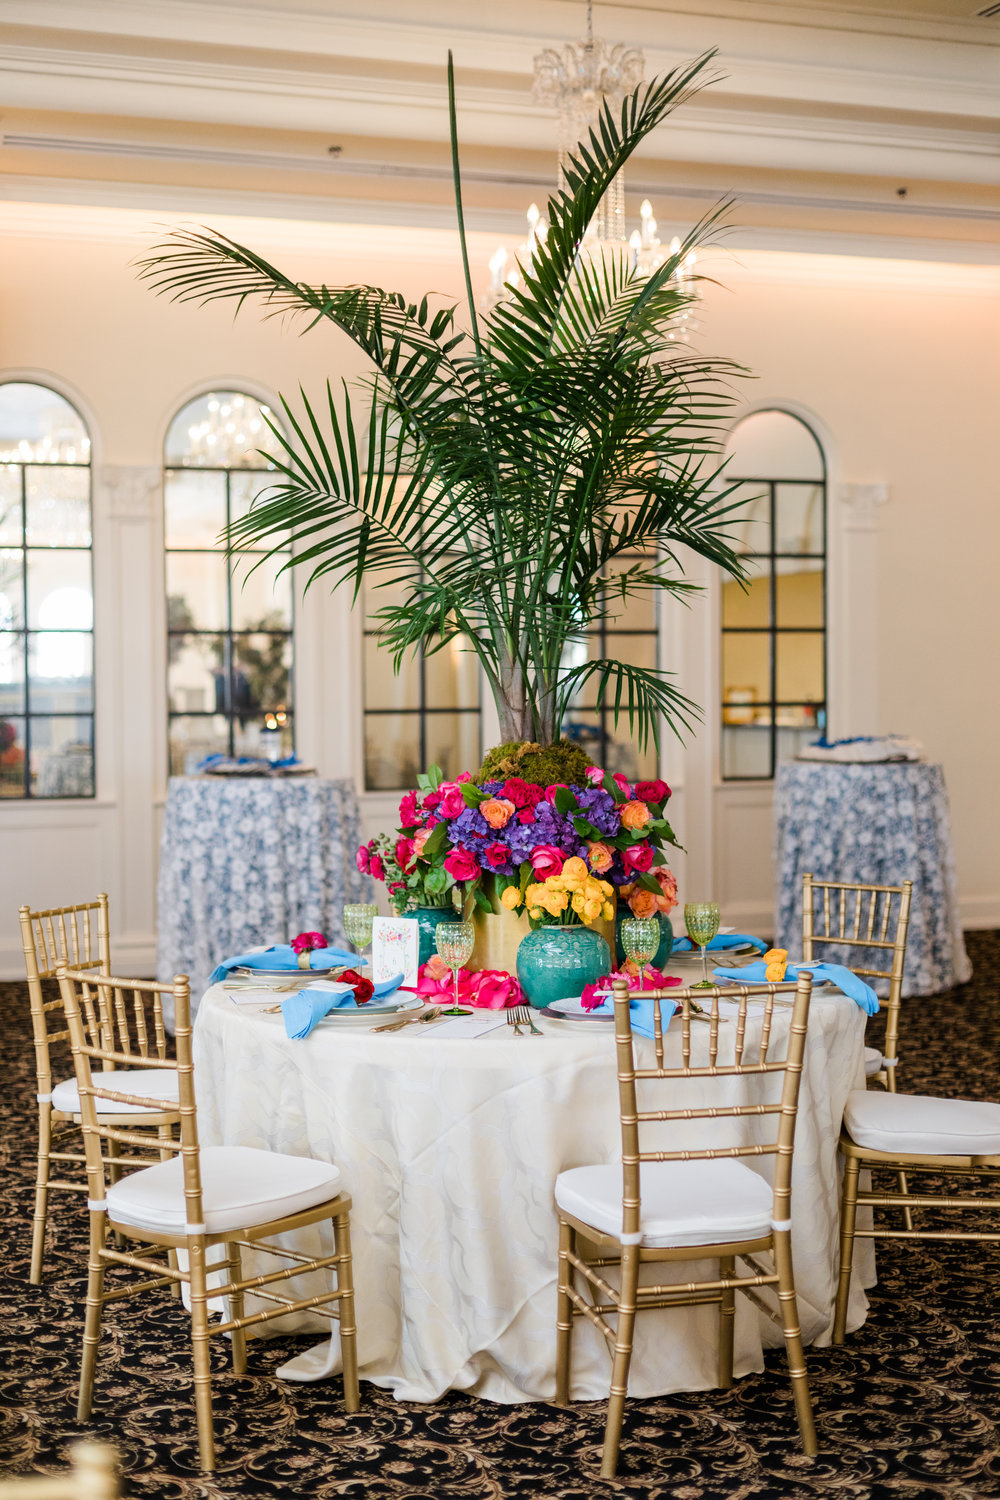 Handley Breaux Desings | Southern Wedding Planner, Event Designer, Southern Weddings, Birmingham Wedding Planner, Birmingham Bride, Birmingham Weddings, Alabama Weddings, Alabama Wedding Planner, Alabama Bride, Birmingham Events